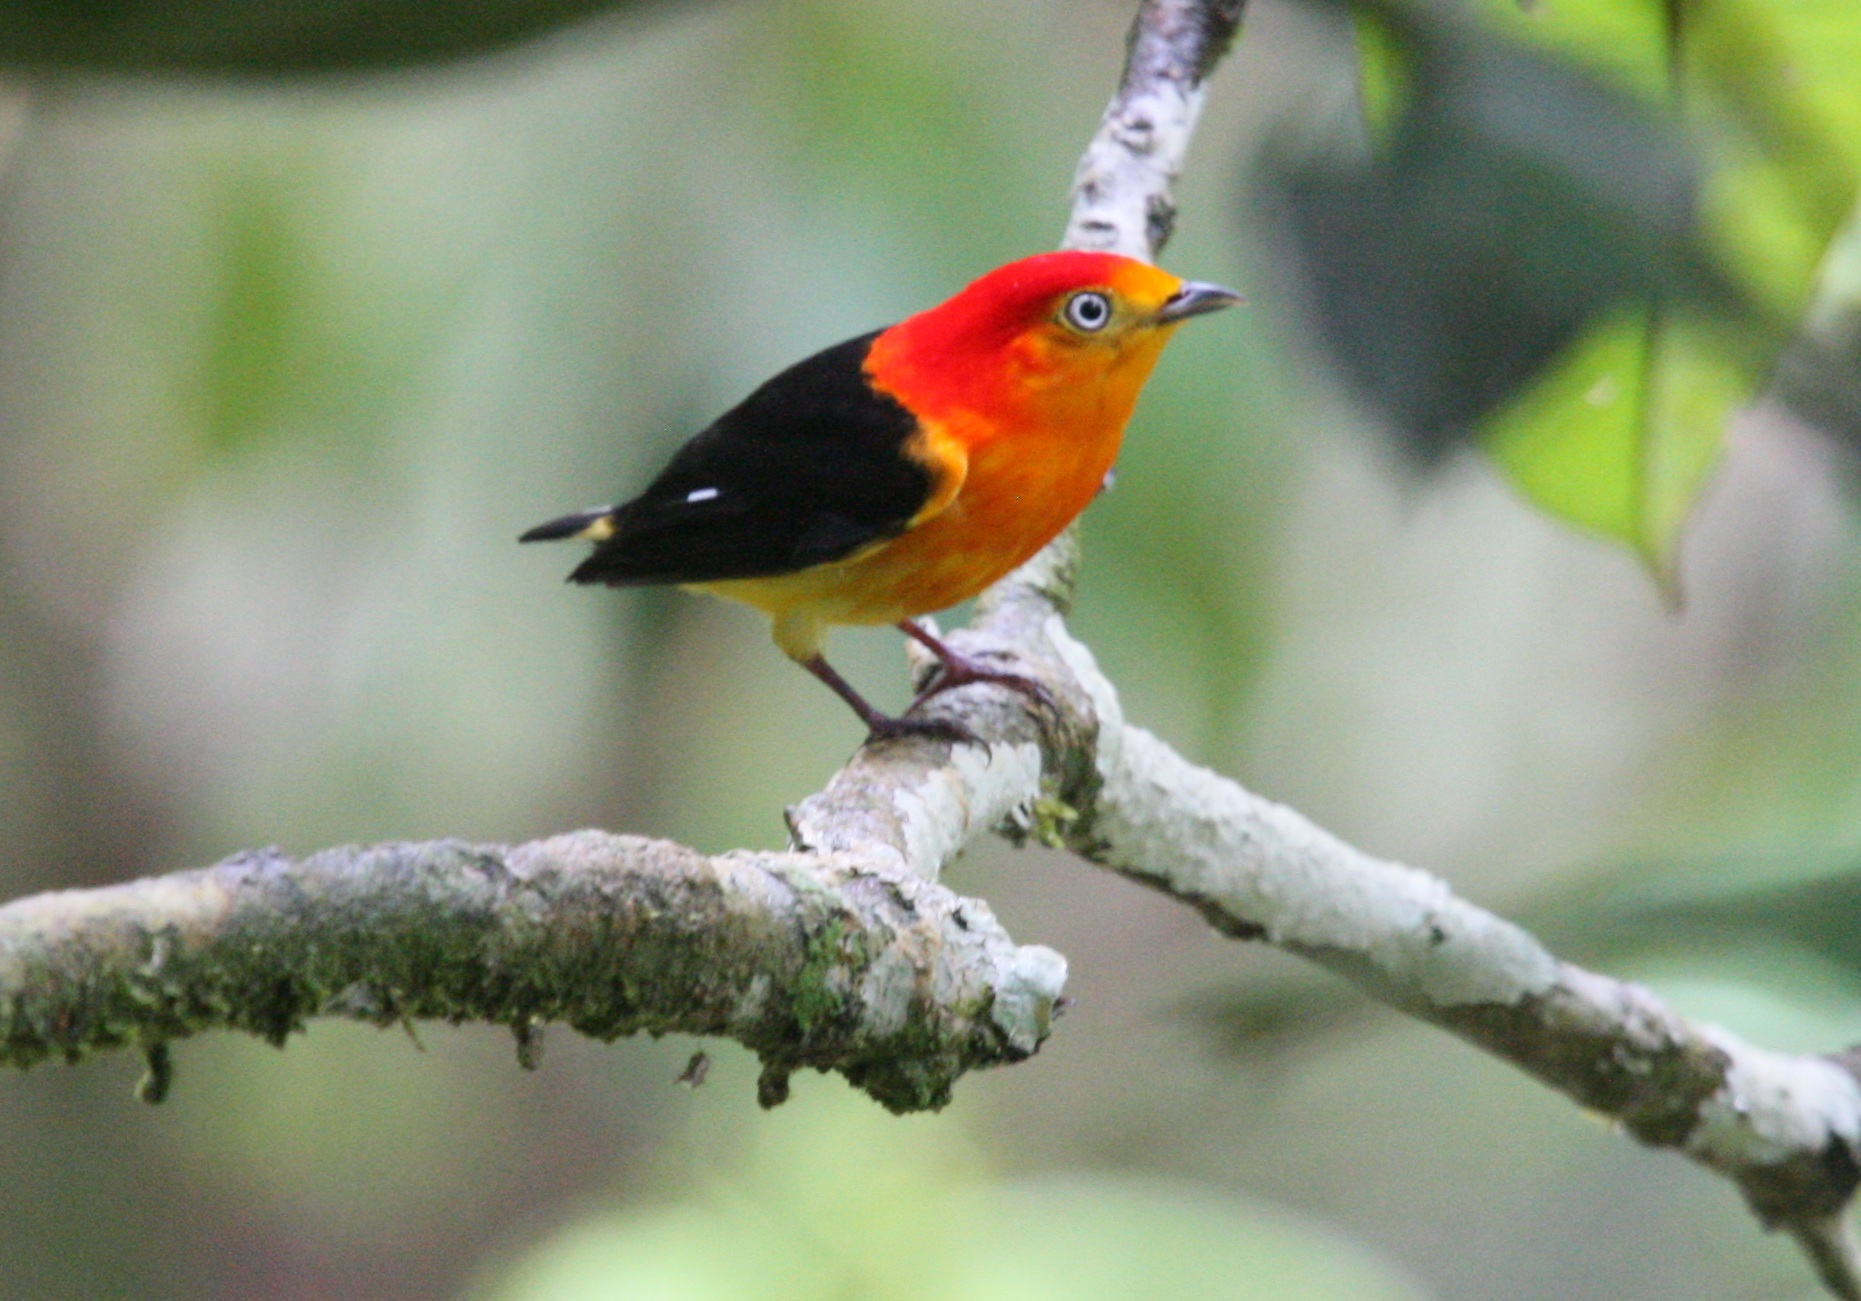 Band-tailed Manakin on the branch